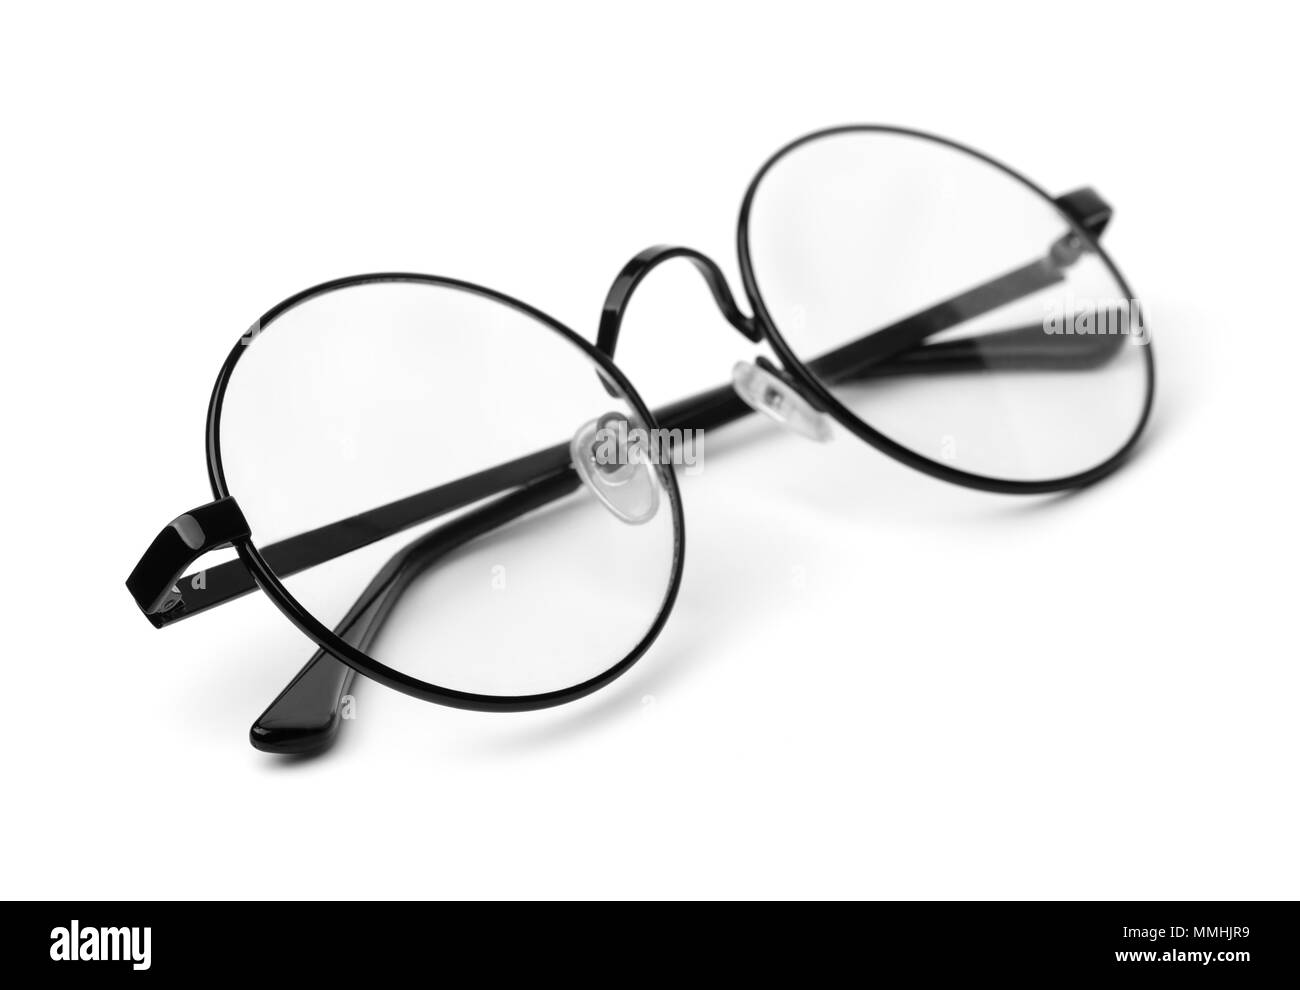 Black classic round eyeglasses isolated on white - Stock Image